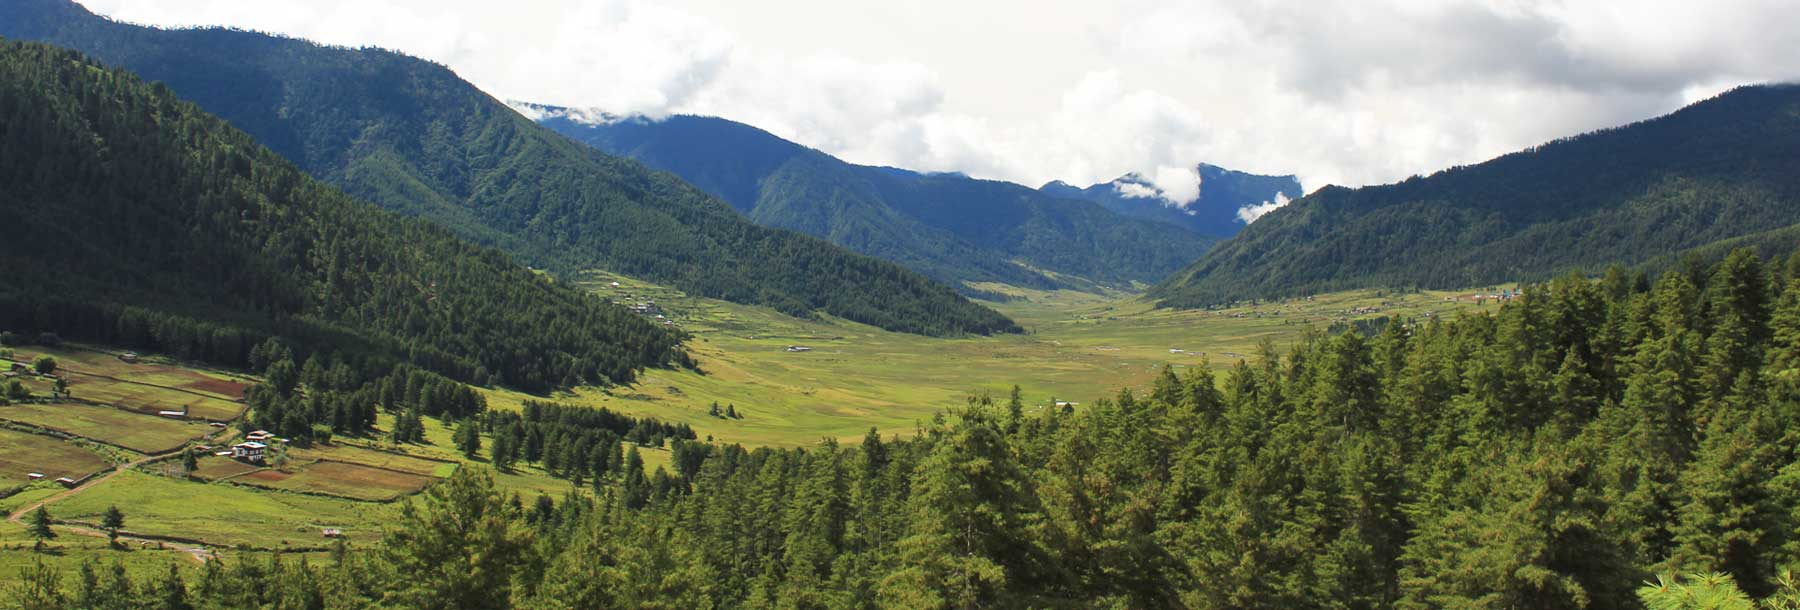 The glacial valley of Phobjikha, Central Bhutan.